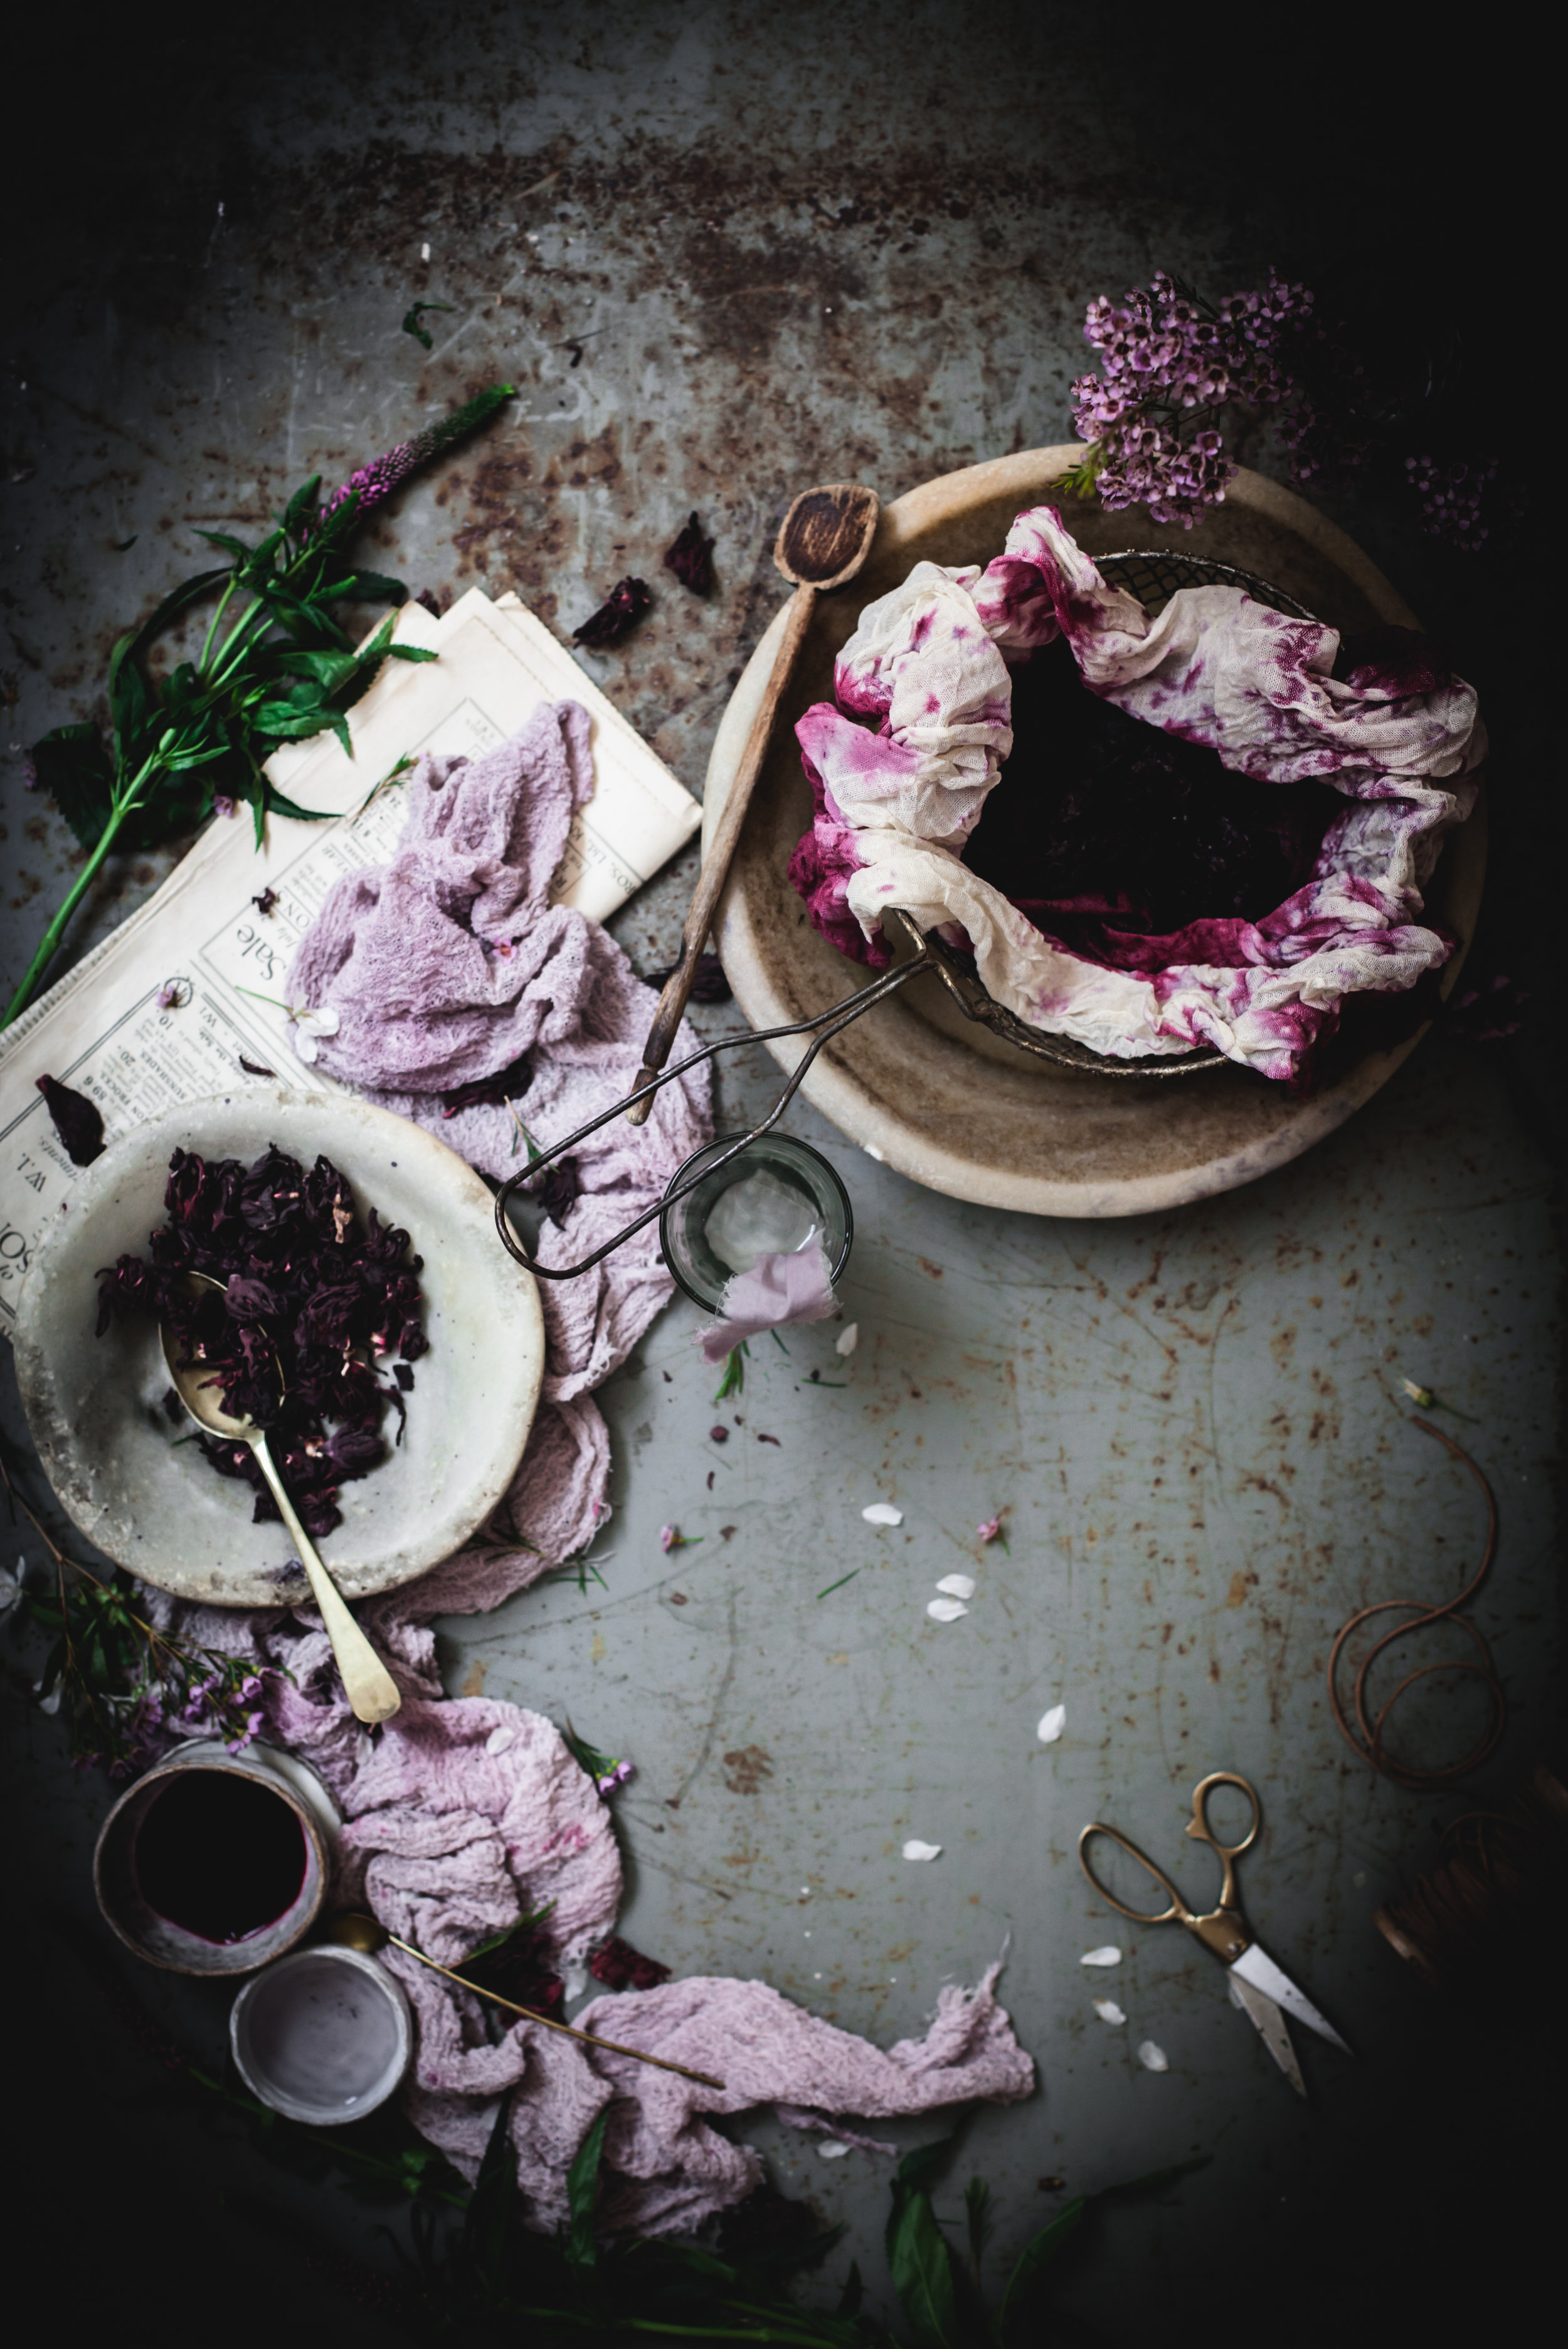 The natural dye process, little ceramic bowl by NomLiving